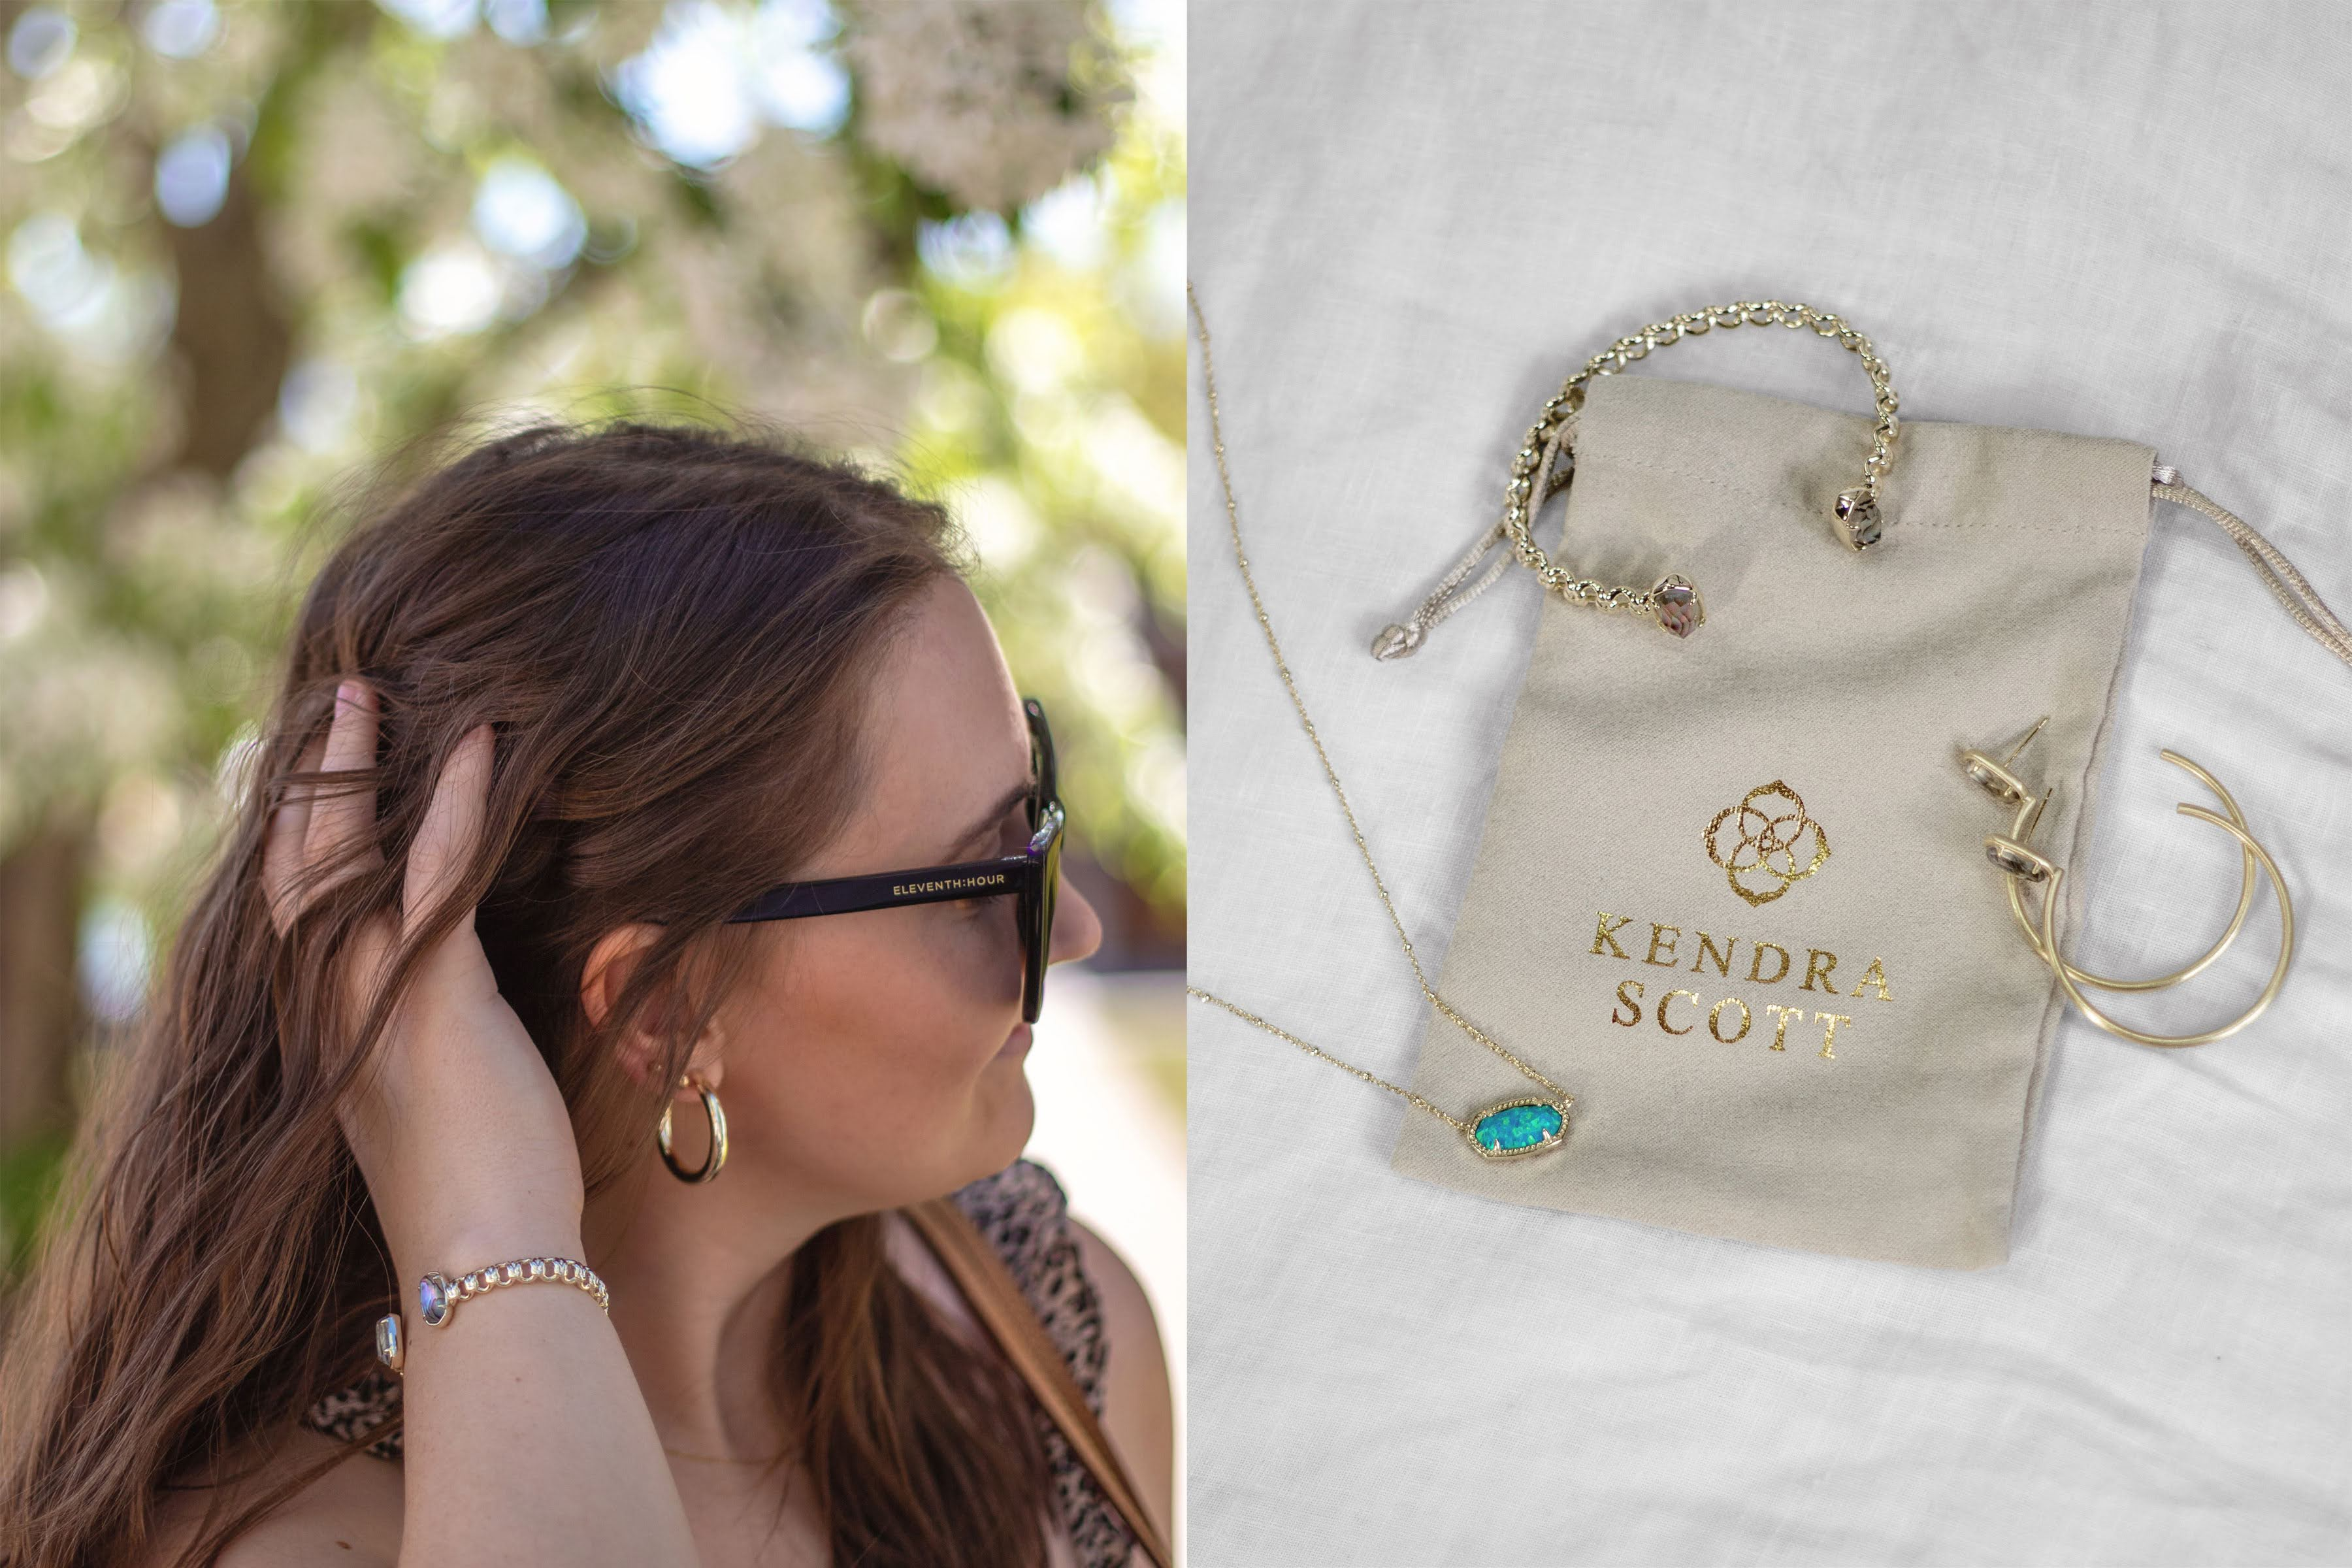 My Kendra Scott Collection + Favorite Pieces, Lifestyle Fashion Blogger